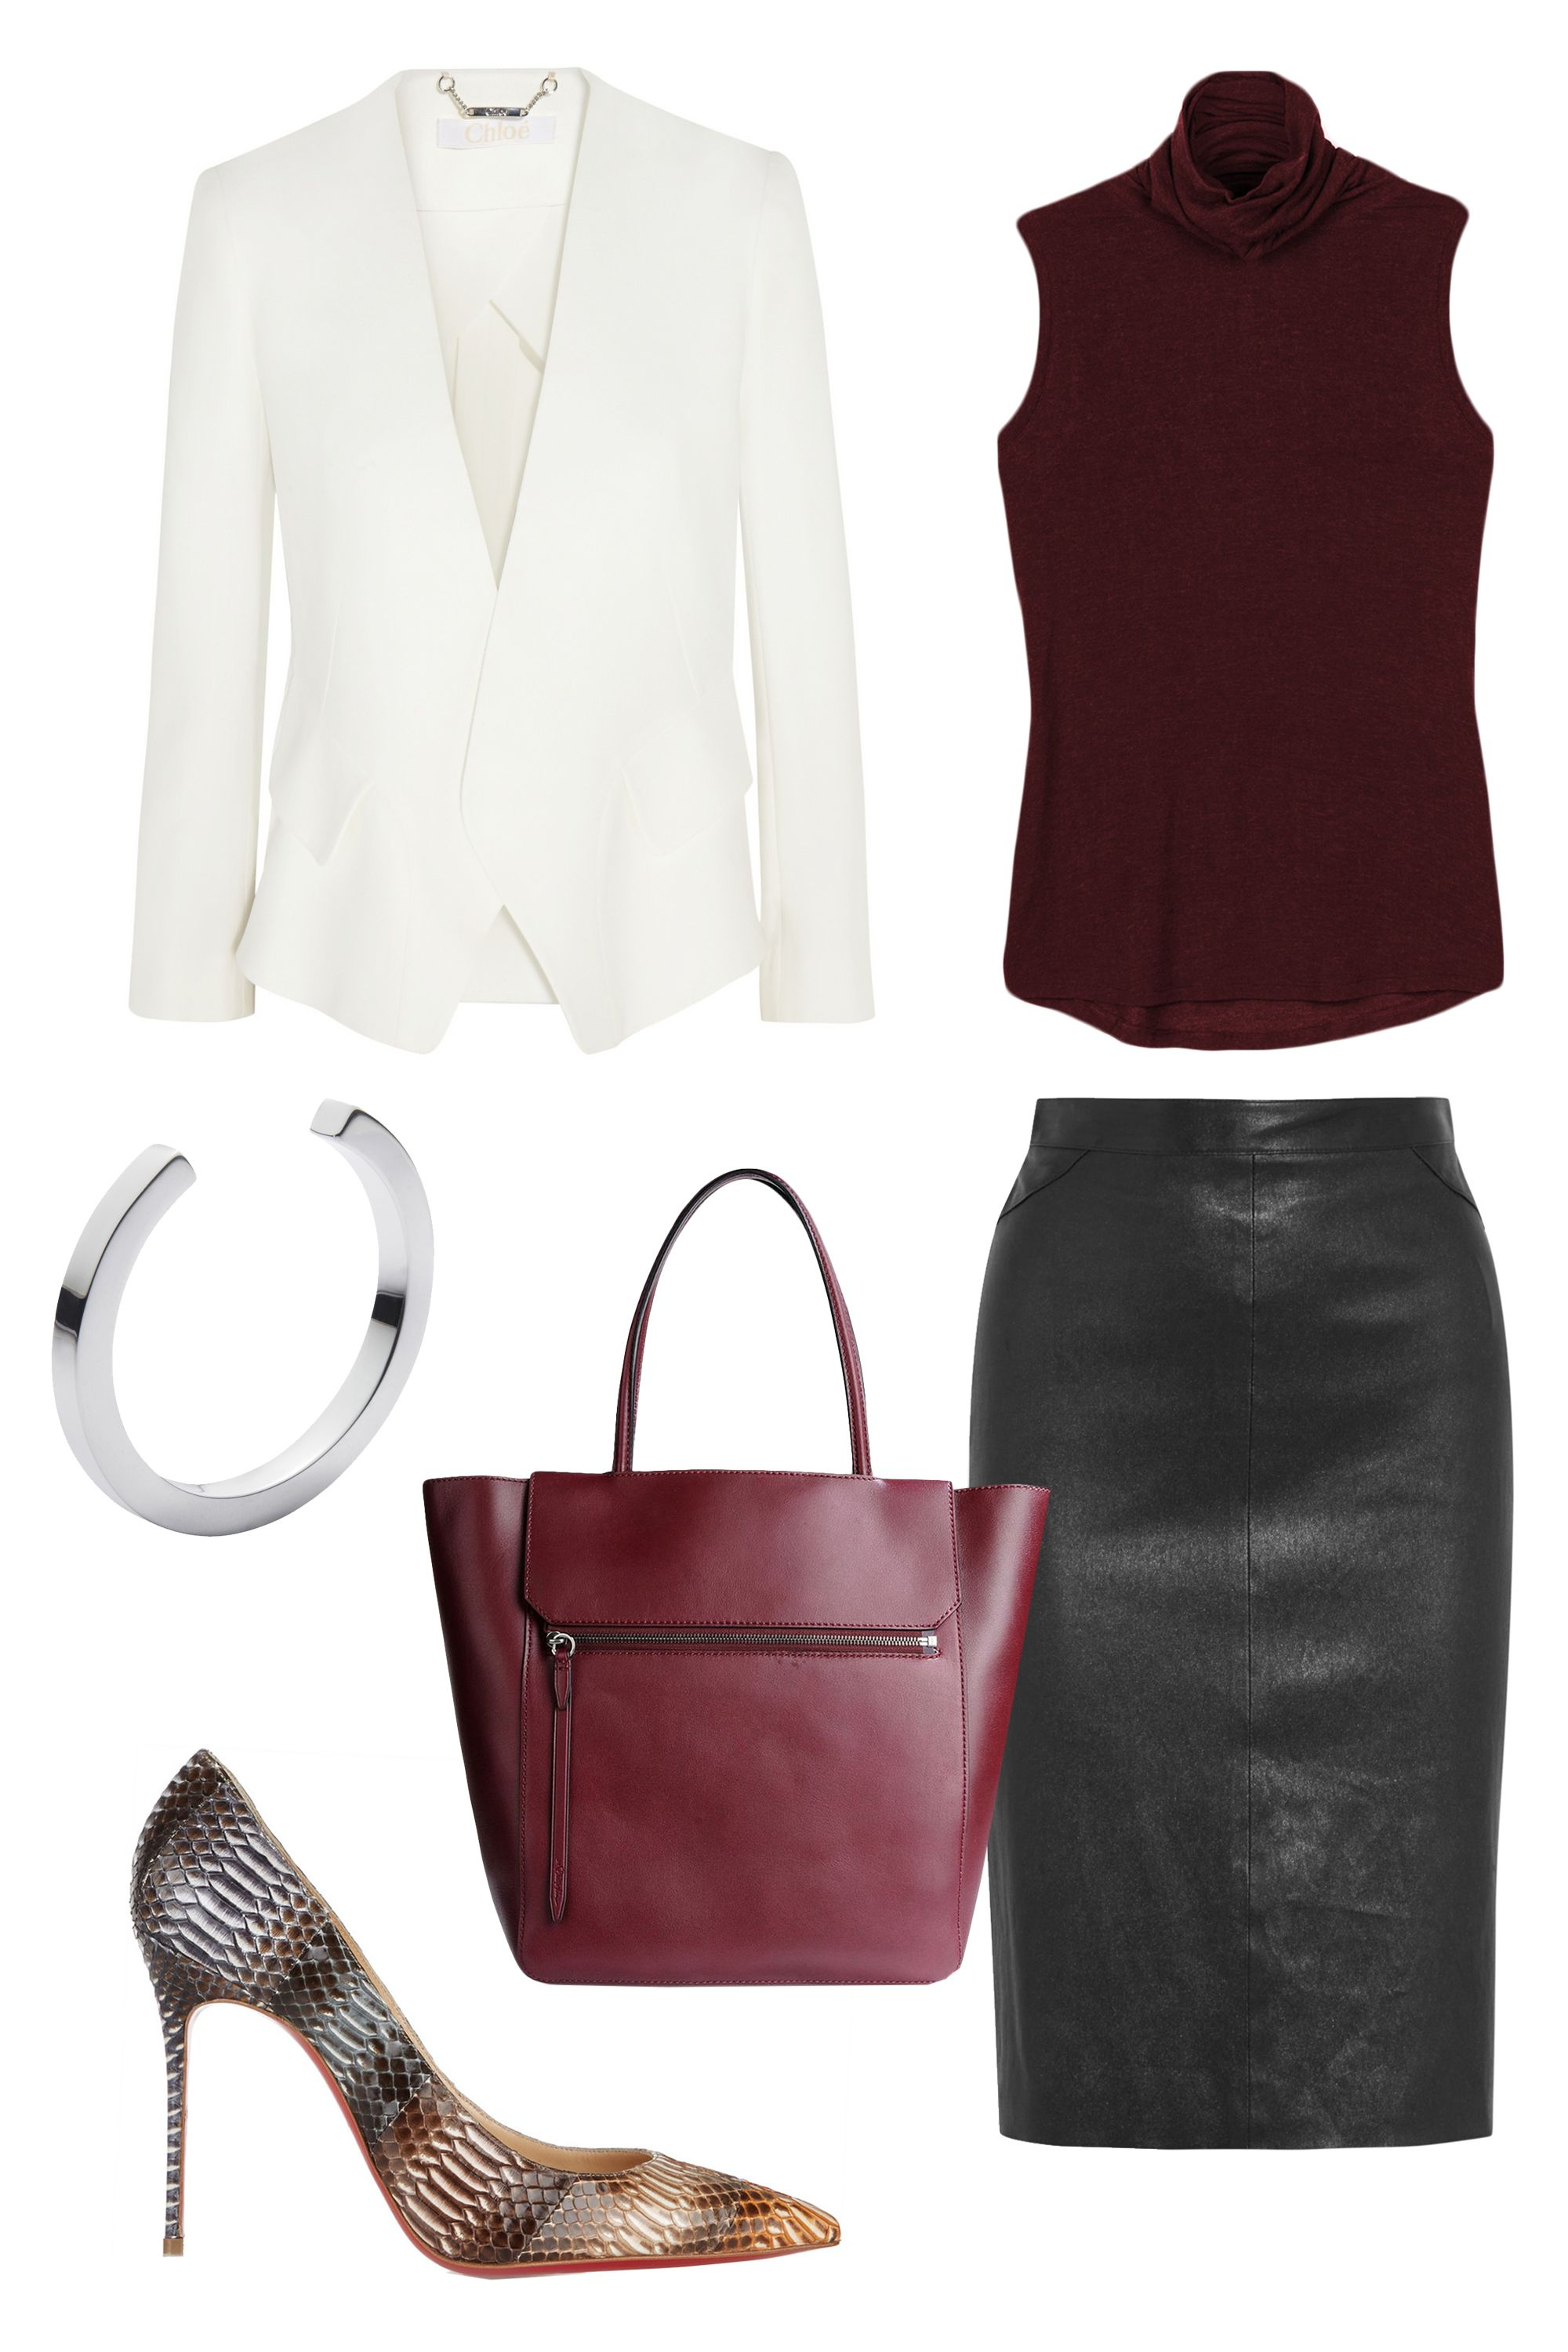 """<p>Your key to looking in command: Mixing classic, structured pieces with ease. Looking for a foolproof combo? Add a white blazer, a tote and a statement shoe in a similar palette; a black leather skirt adds just the right amount of edge. </p><p><strong>Kit and Ace</strong> Prevost Sleeveless Top, $78, <a href=""""https://ad.atdmt.com/c/go;p=11067200800298;a=11067200800296;ev.a=1;idfa=;idfa_lat=;aaid=;aaid_lat=;cache="""" target=""""_blank"""">kitandace.com</a>; <strong>Givenchy</strong> Pencil Skirt in Black Leather, $3,095, <a href=""""http://www.net-a-porter.com/us/en/product/587697"""" target=""""_blank"""">net-a-porter.com</a>; <strong>3.1 Phillip Lim</strong> Red Leather Nova Tote, $695, <a href=""""https://shop.harpersbazaar.com/designers/0-9/31-phillip-lim/red-leather-nova-bag-5129.html"""" target=""""_blank"""">shopBAZAAR.com</a>; <strong>Chloé </strong>Crepe Blazer, $2,650, <a href=""""http://www.net-a-porter.com/us/en/product/587161"""" target=""""_blank"""">net-a-porter.com</a>; <strong>Jennifer Fisher </strong>Silver Square Cuff, $260, <a href=""""https://shop.harpersbazaar.com/designers/jennifer-fisher/silver-square-cuff/"""" target=""""_blank"""">shopBAZAAR.com</a>; <strong>Christian Louboutin</strong> Décolleté 100 Snake Pumps, $1,395, <a href=""""http://www.net-a-porter.com/us/en/product/525156"""" target=""""_blank"""">net-a-porter.com</a></p>"""